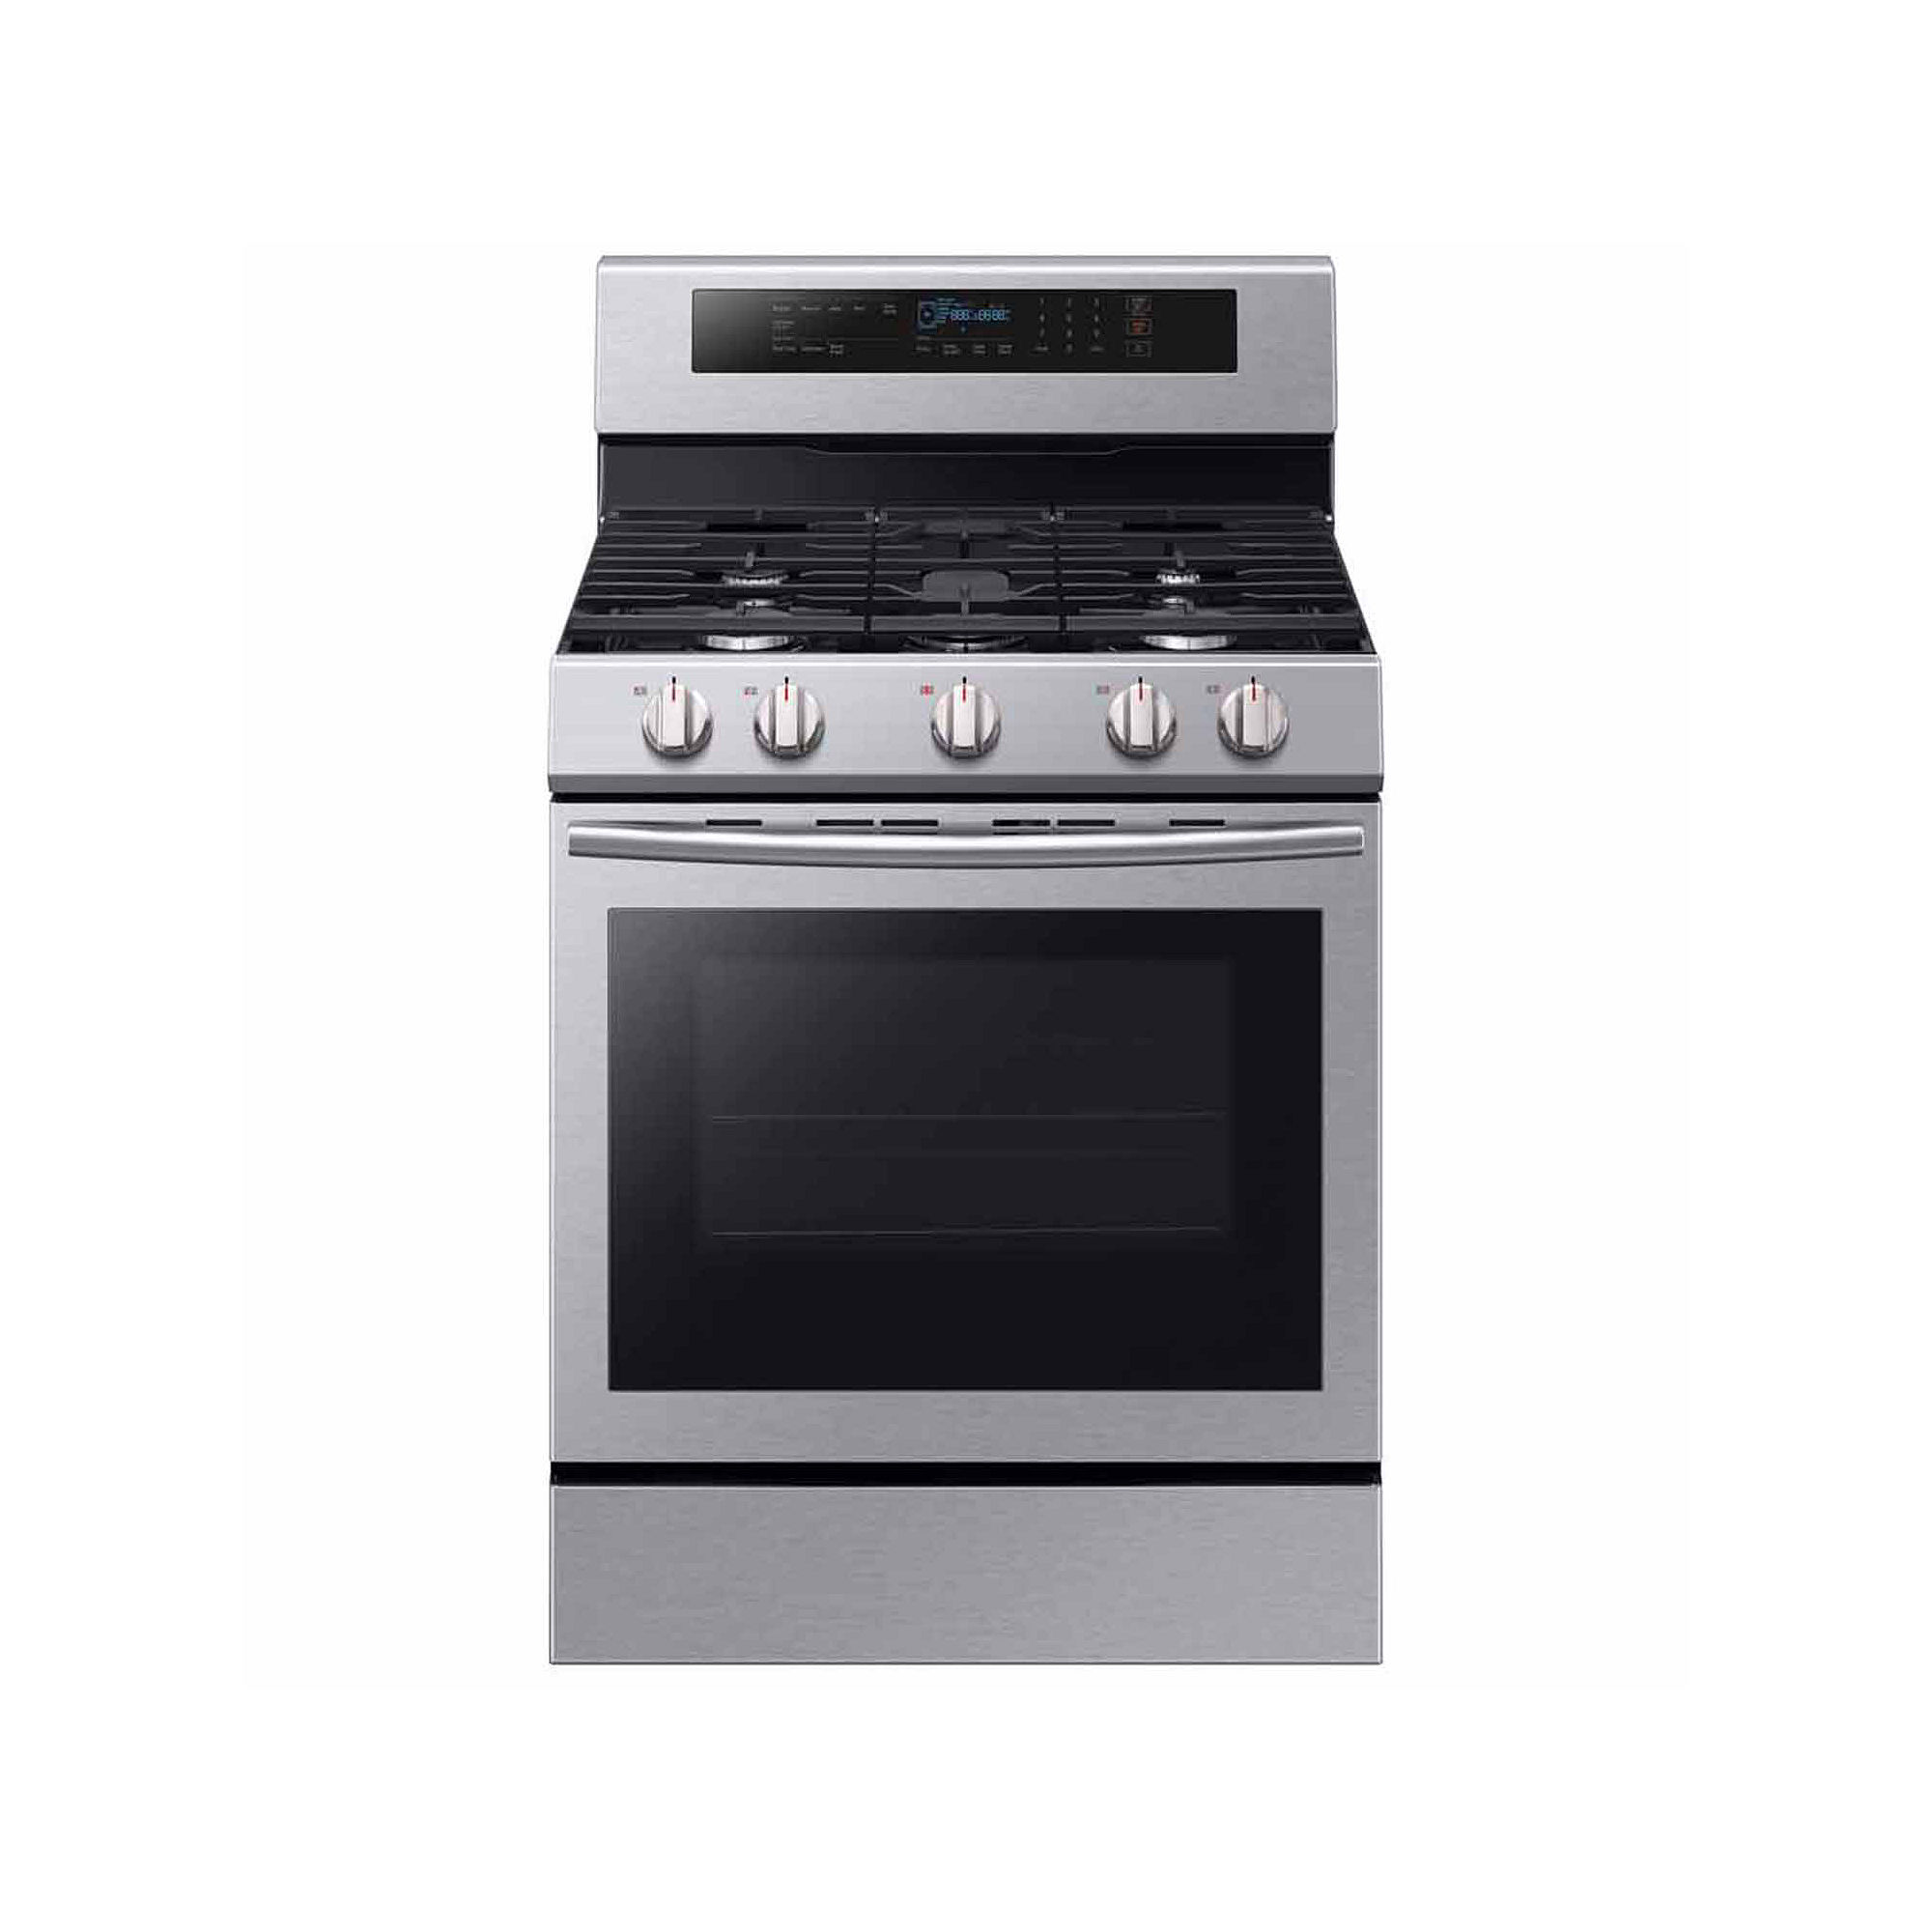 Samsung 5.8 cu. Ft. True Convection Gas Range with Illuminated Knobs - 86311900018